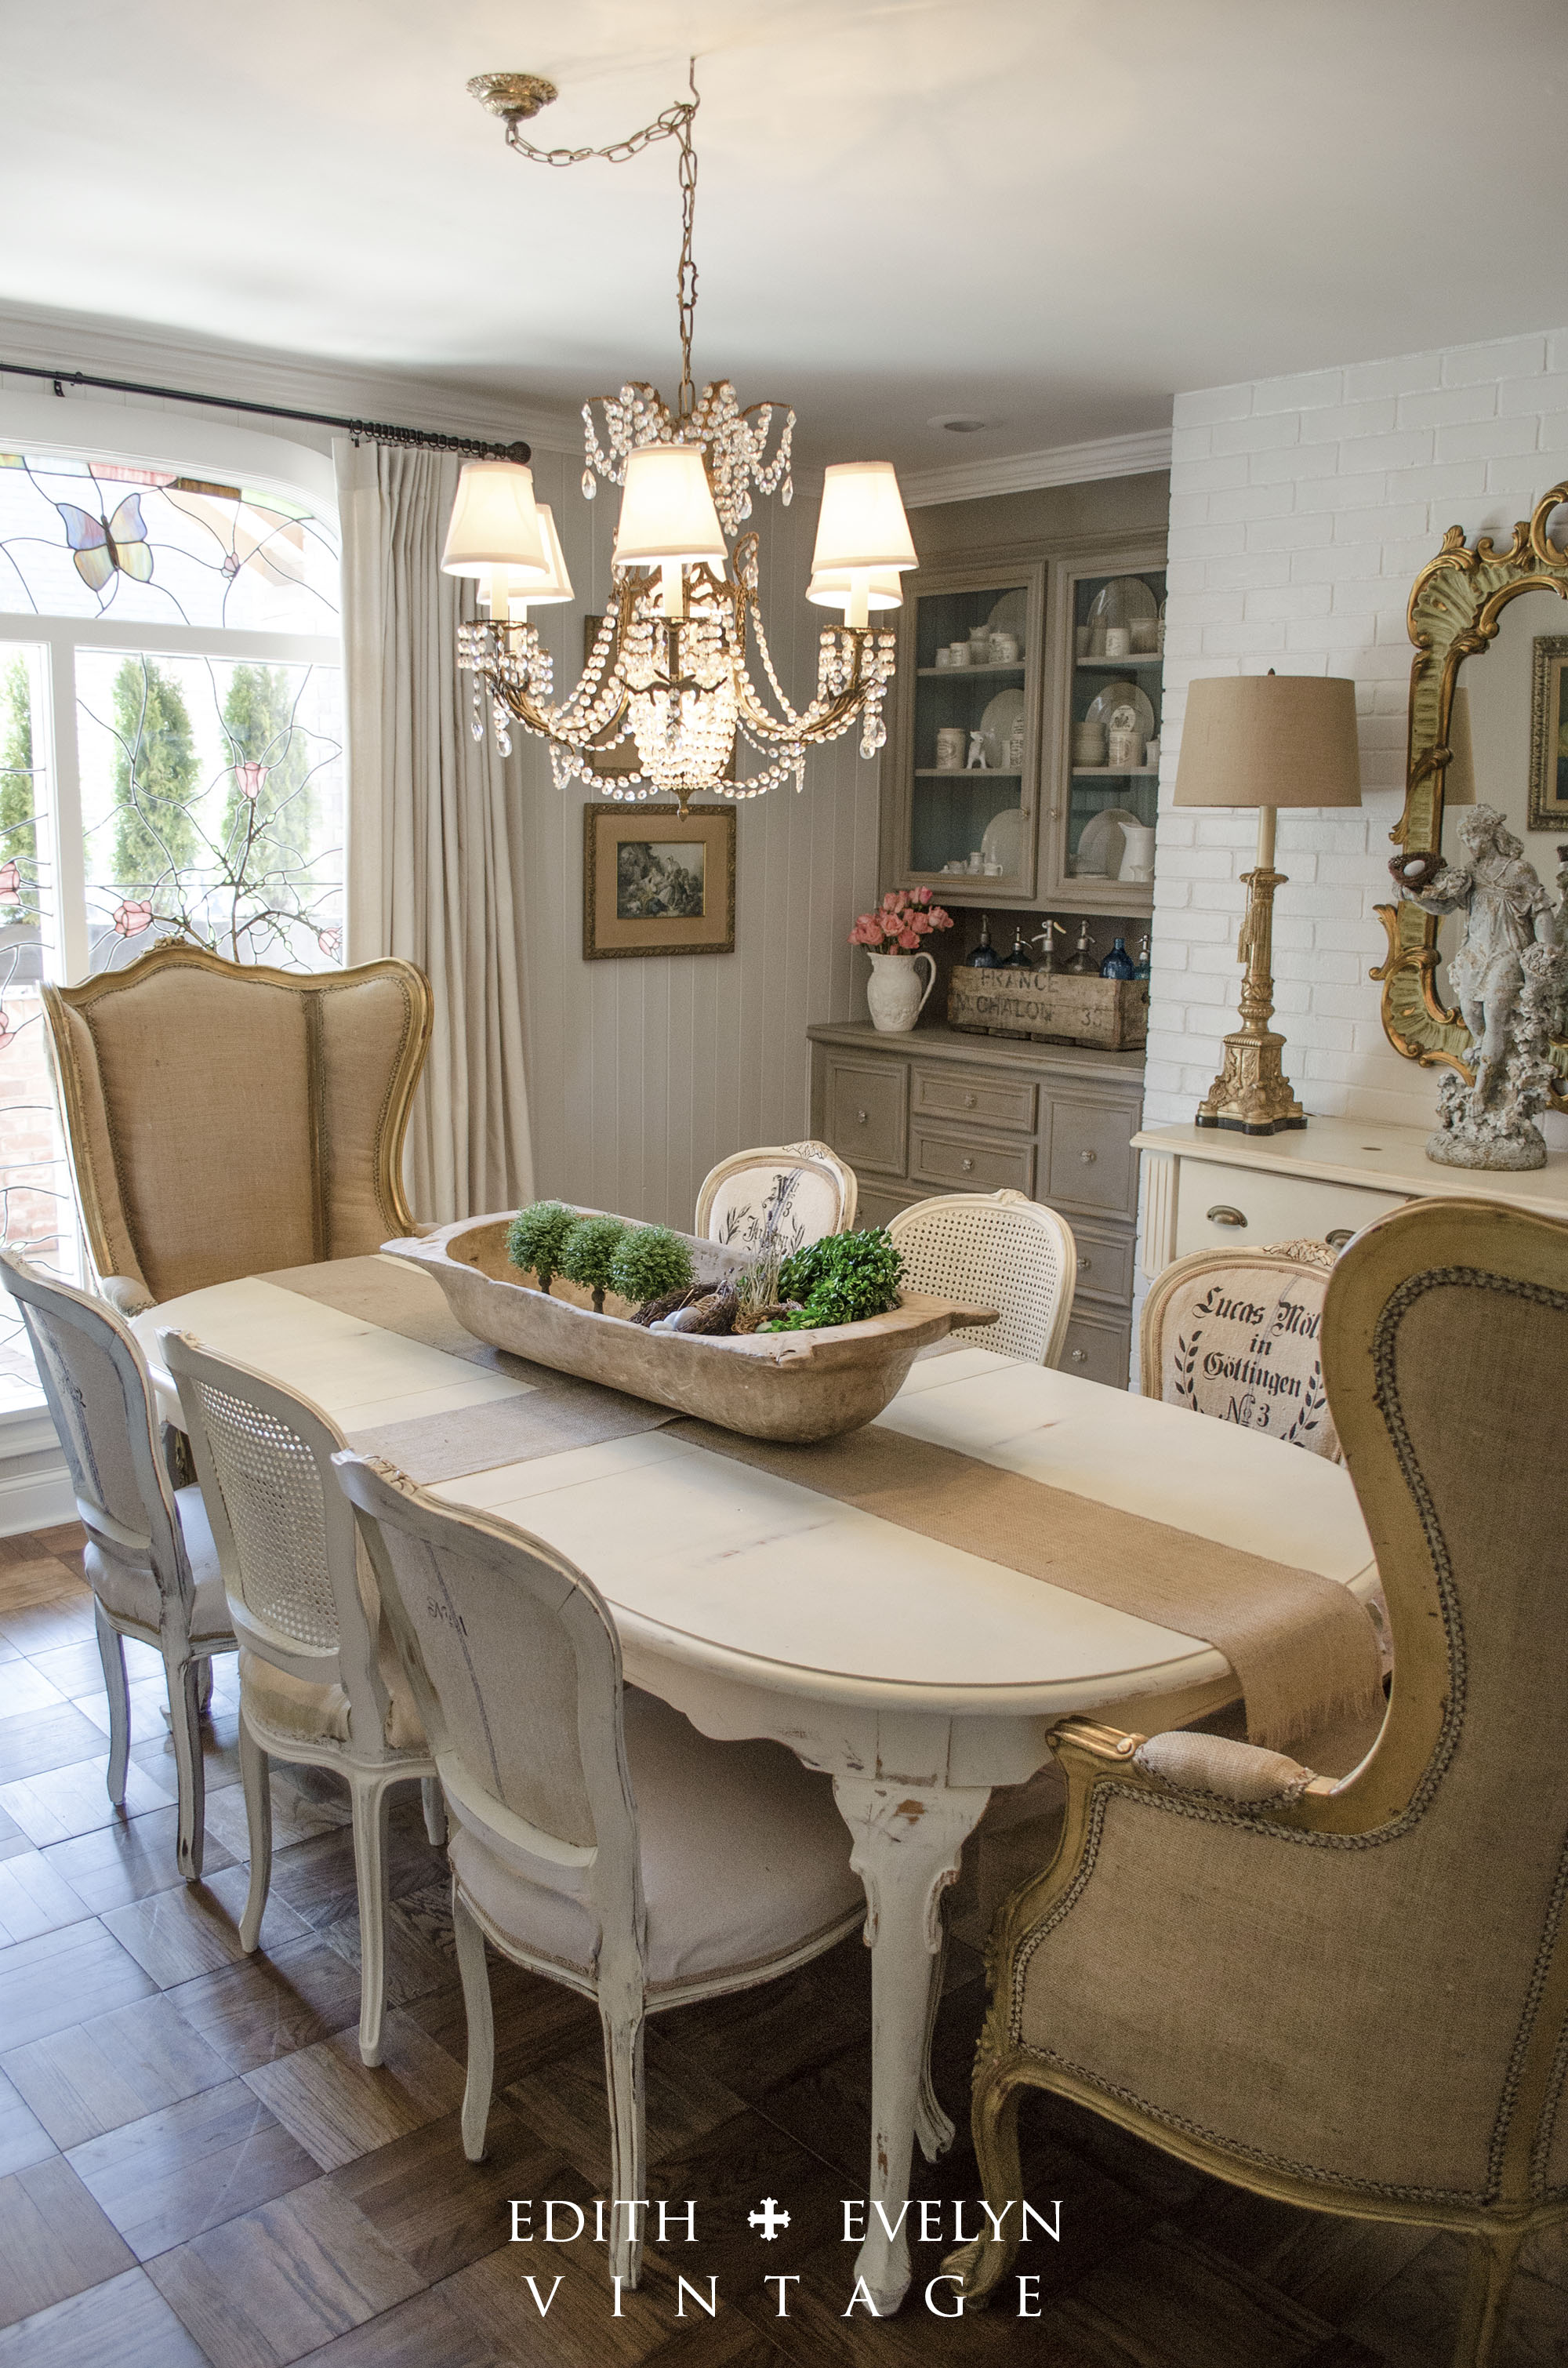 The Dining Room Renovation | Edith & Evelyn Vintage Interiors